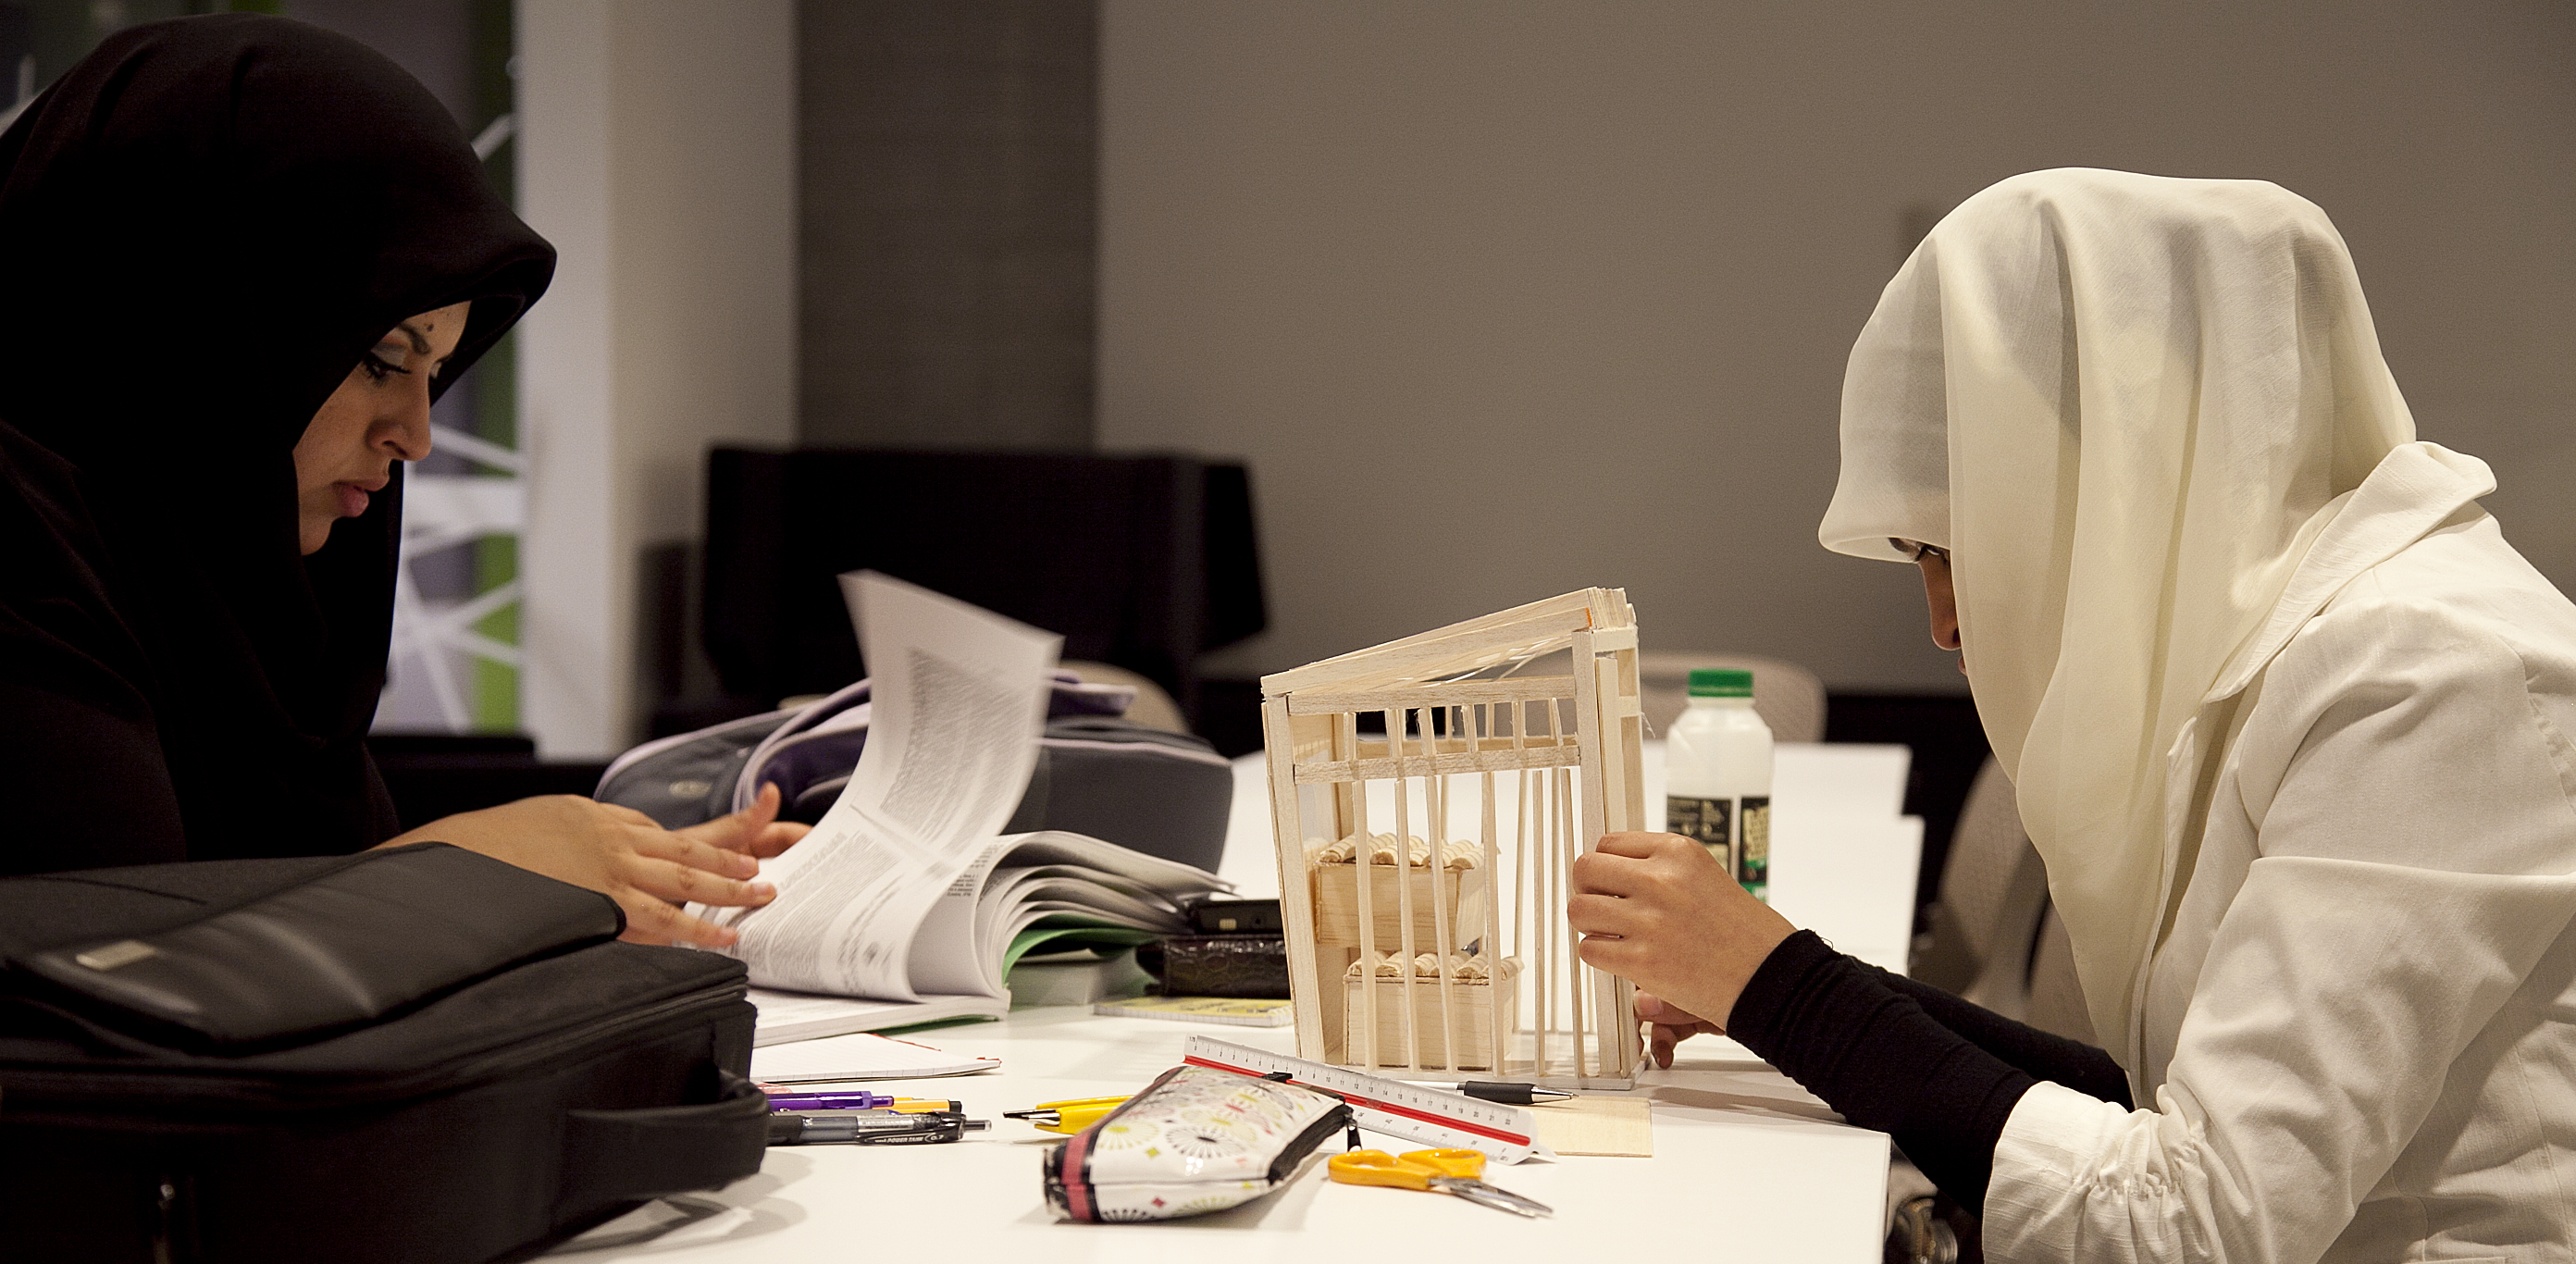 Architecture students working on projects